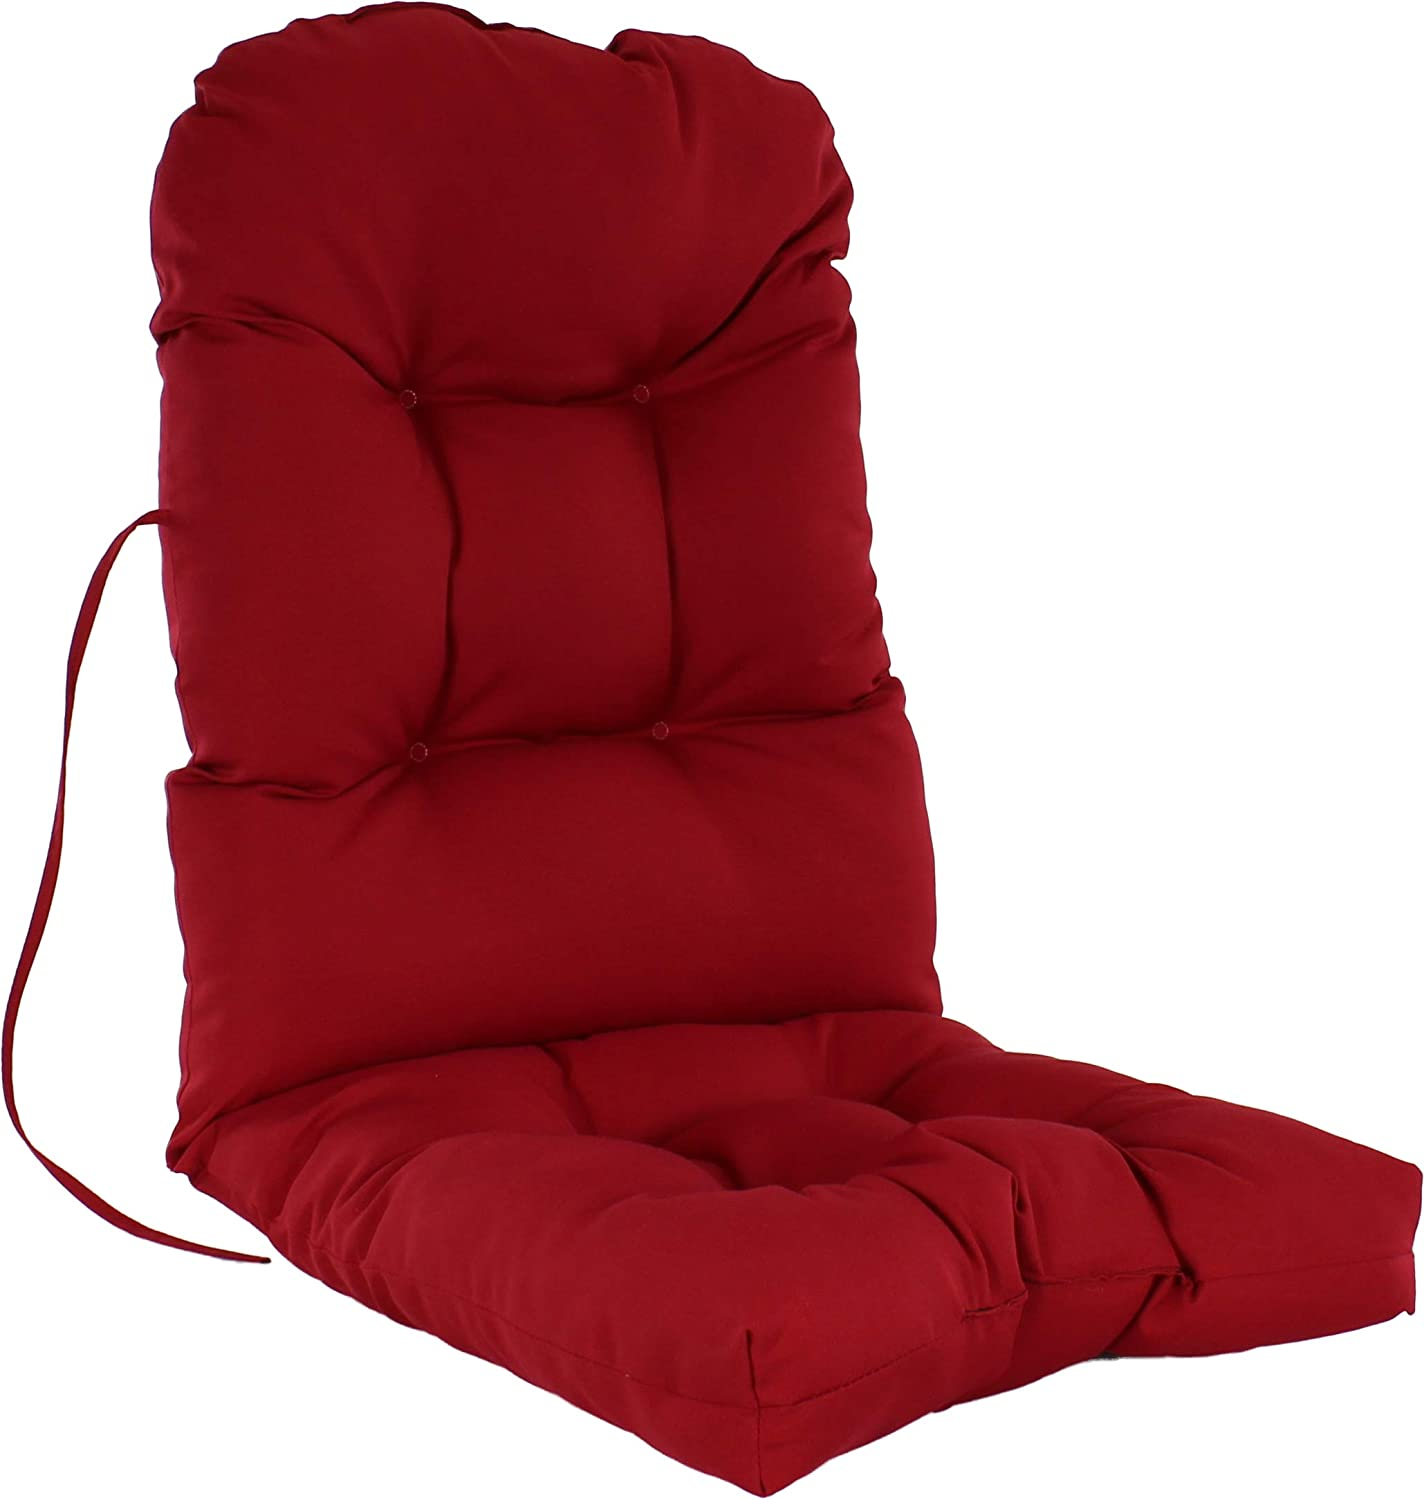 College Covers Al sold out. Everything Comfy Indoor Inventory cleanup selling sale Patio Adirondack Outdoor